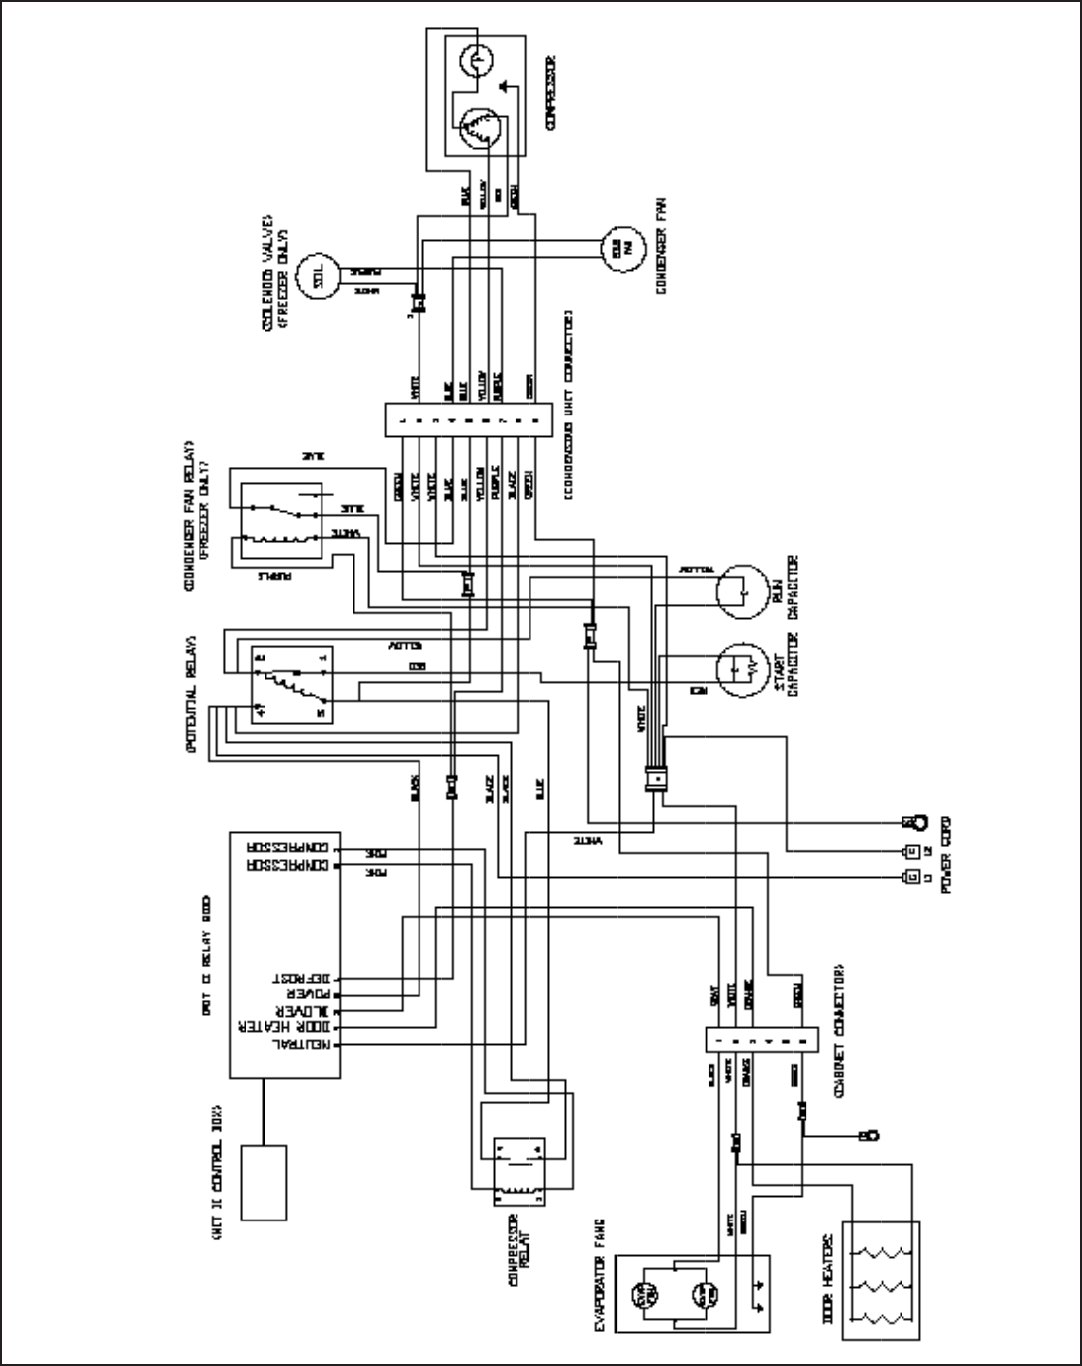 e32f8ecd c967 4244 4de6 e7019d5745fa bg12 traulsen wiring diagram wiring diagram traulsen g12010 wiring diagram at alyssarenee.co